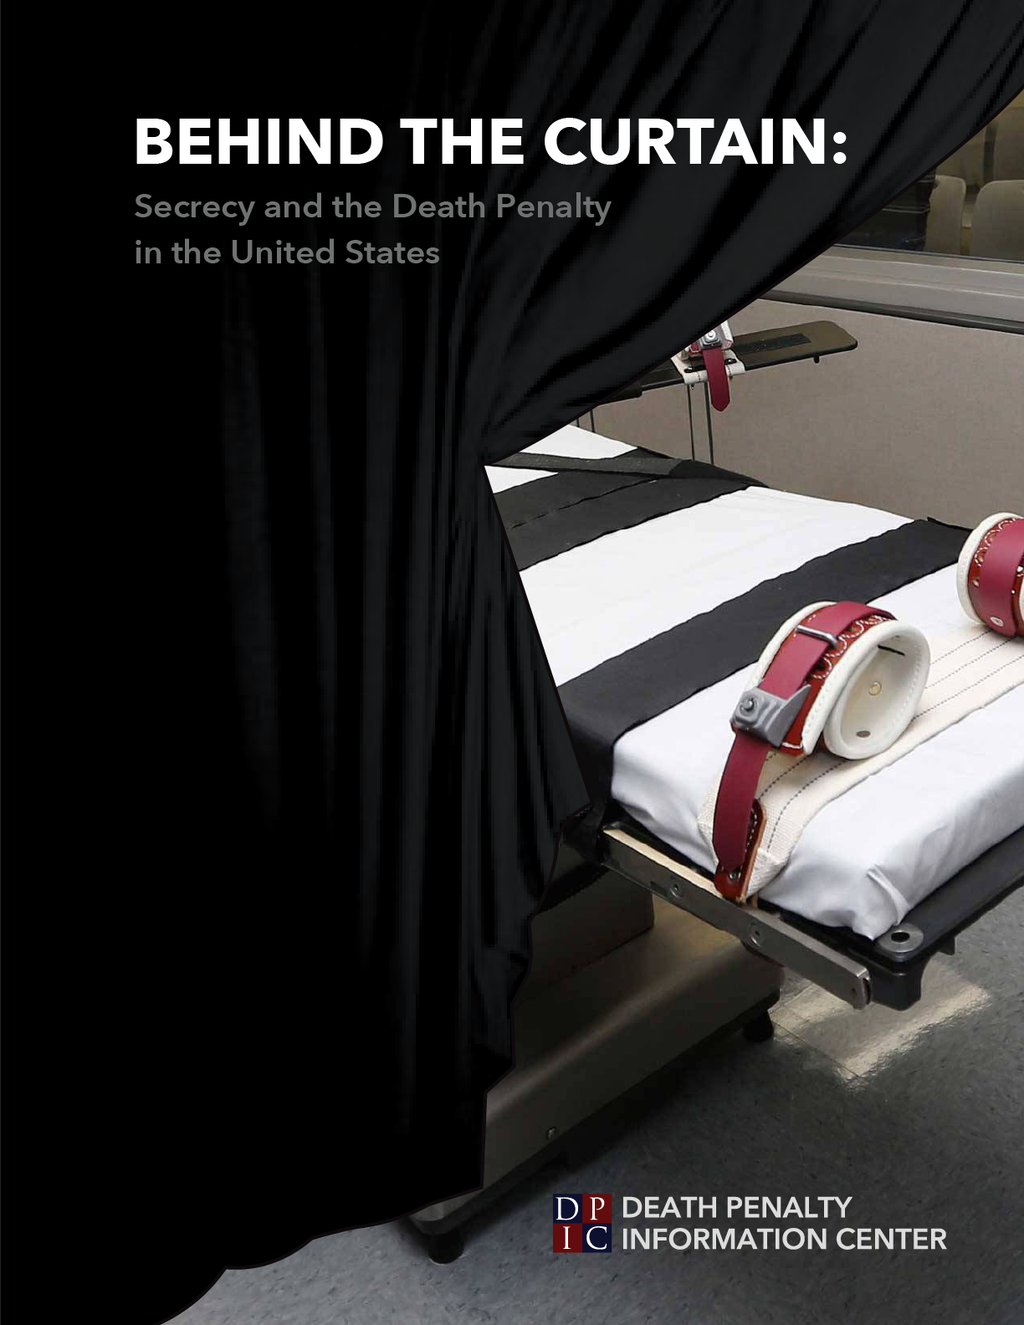 Behind the Curtain: Secrecy and the Death Penalty in the United States